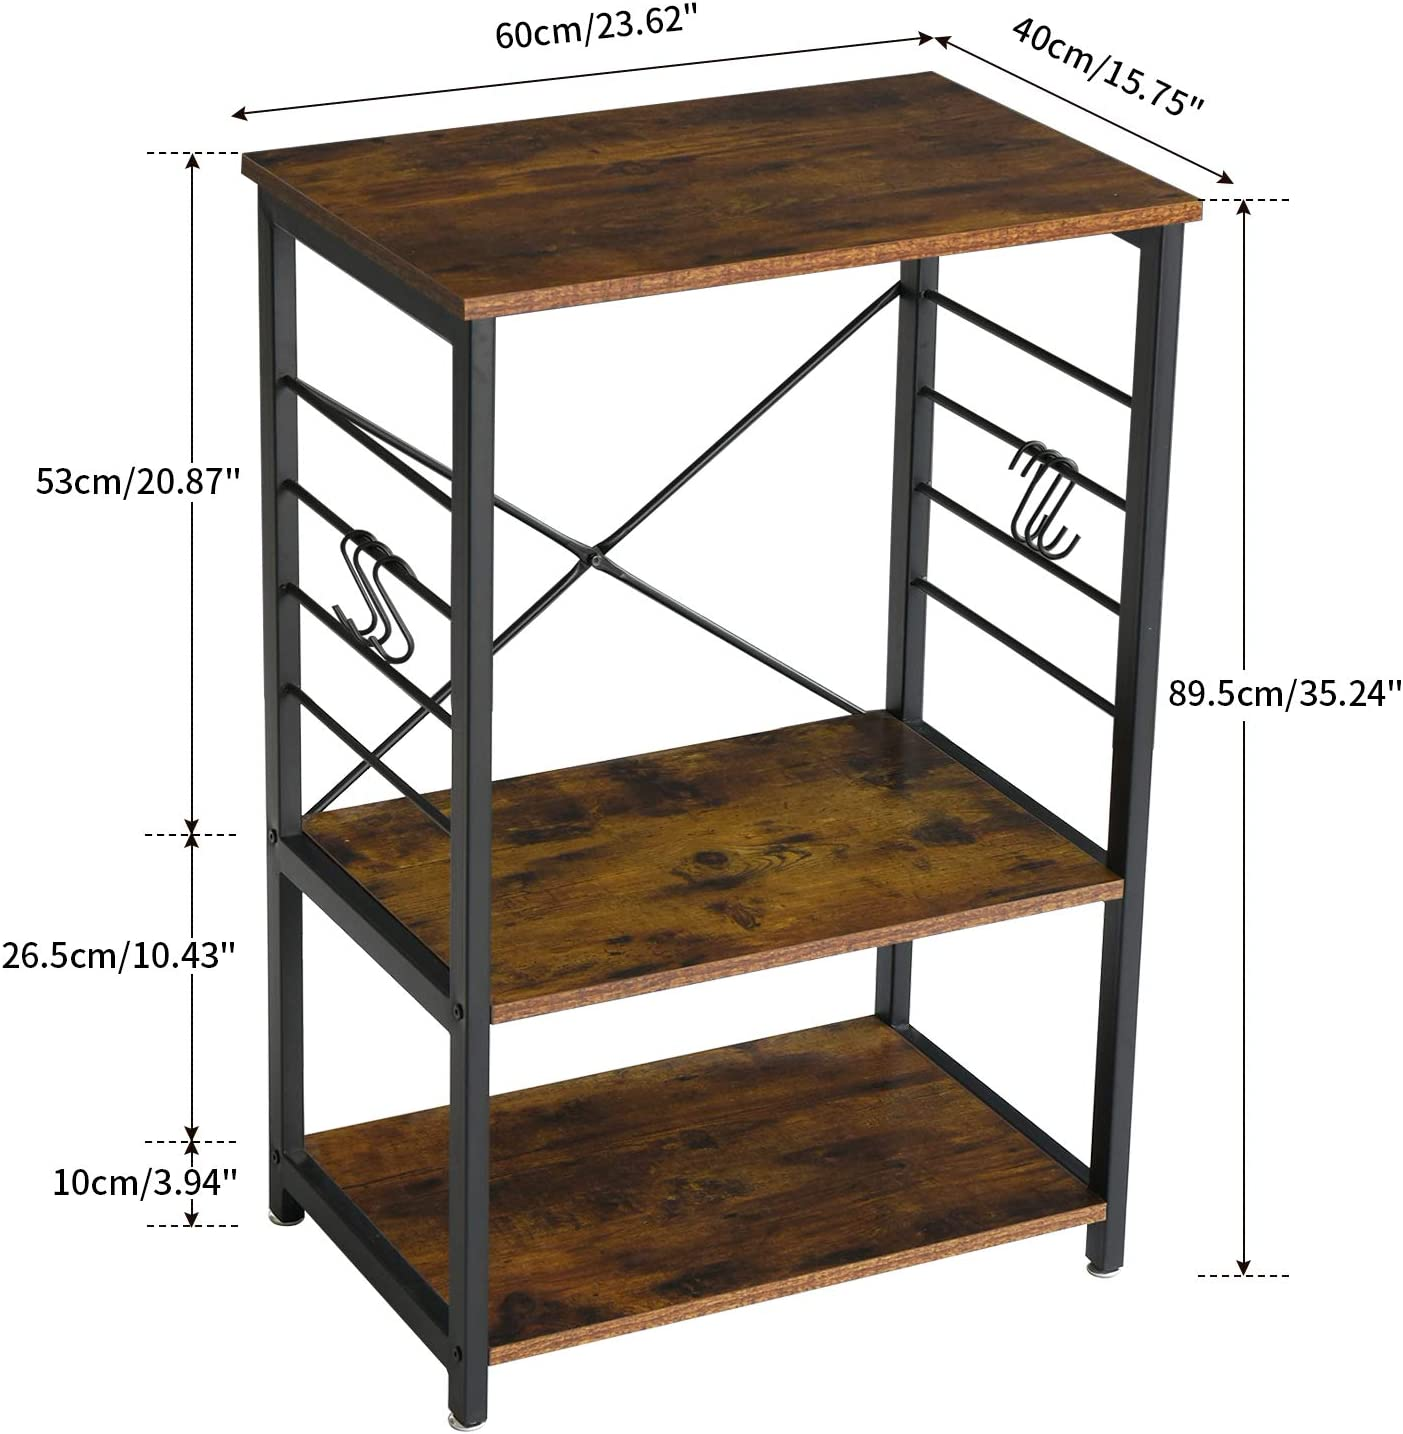 YMYNY Industrial Microwave Oven Stand, 3-Tier Kitchen Baker's Rack with Metal Frame and 6 Hooks, Multifunctional Coffee Bar for Living Room Decoration, Rustic Brown UTMJ022H - Standing Baker's Racks